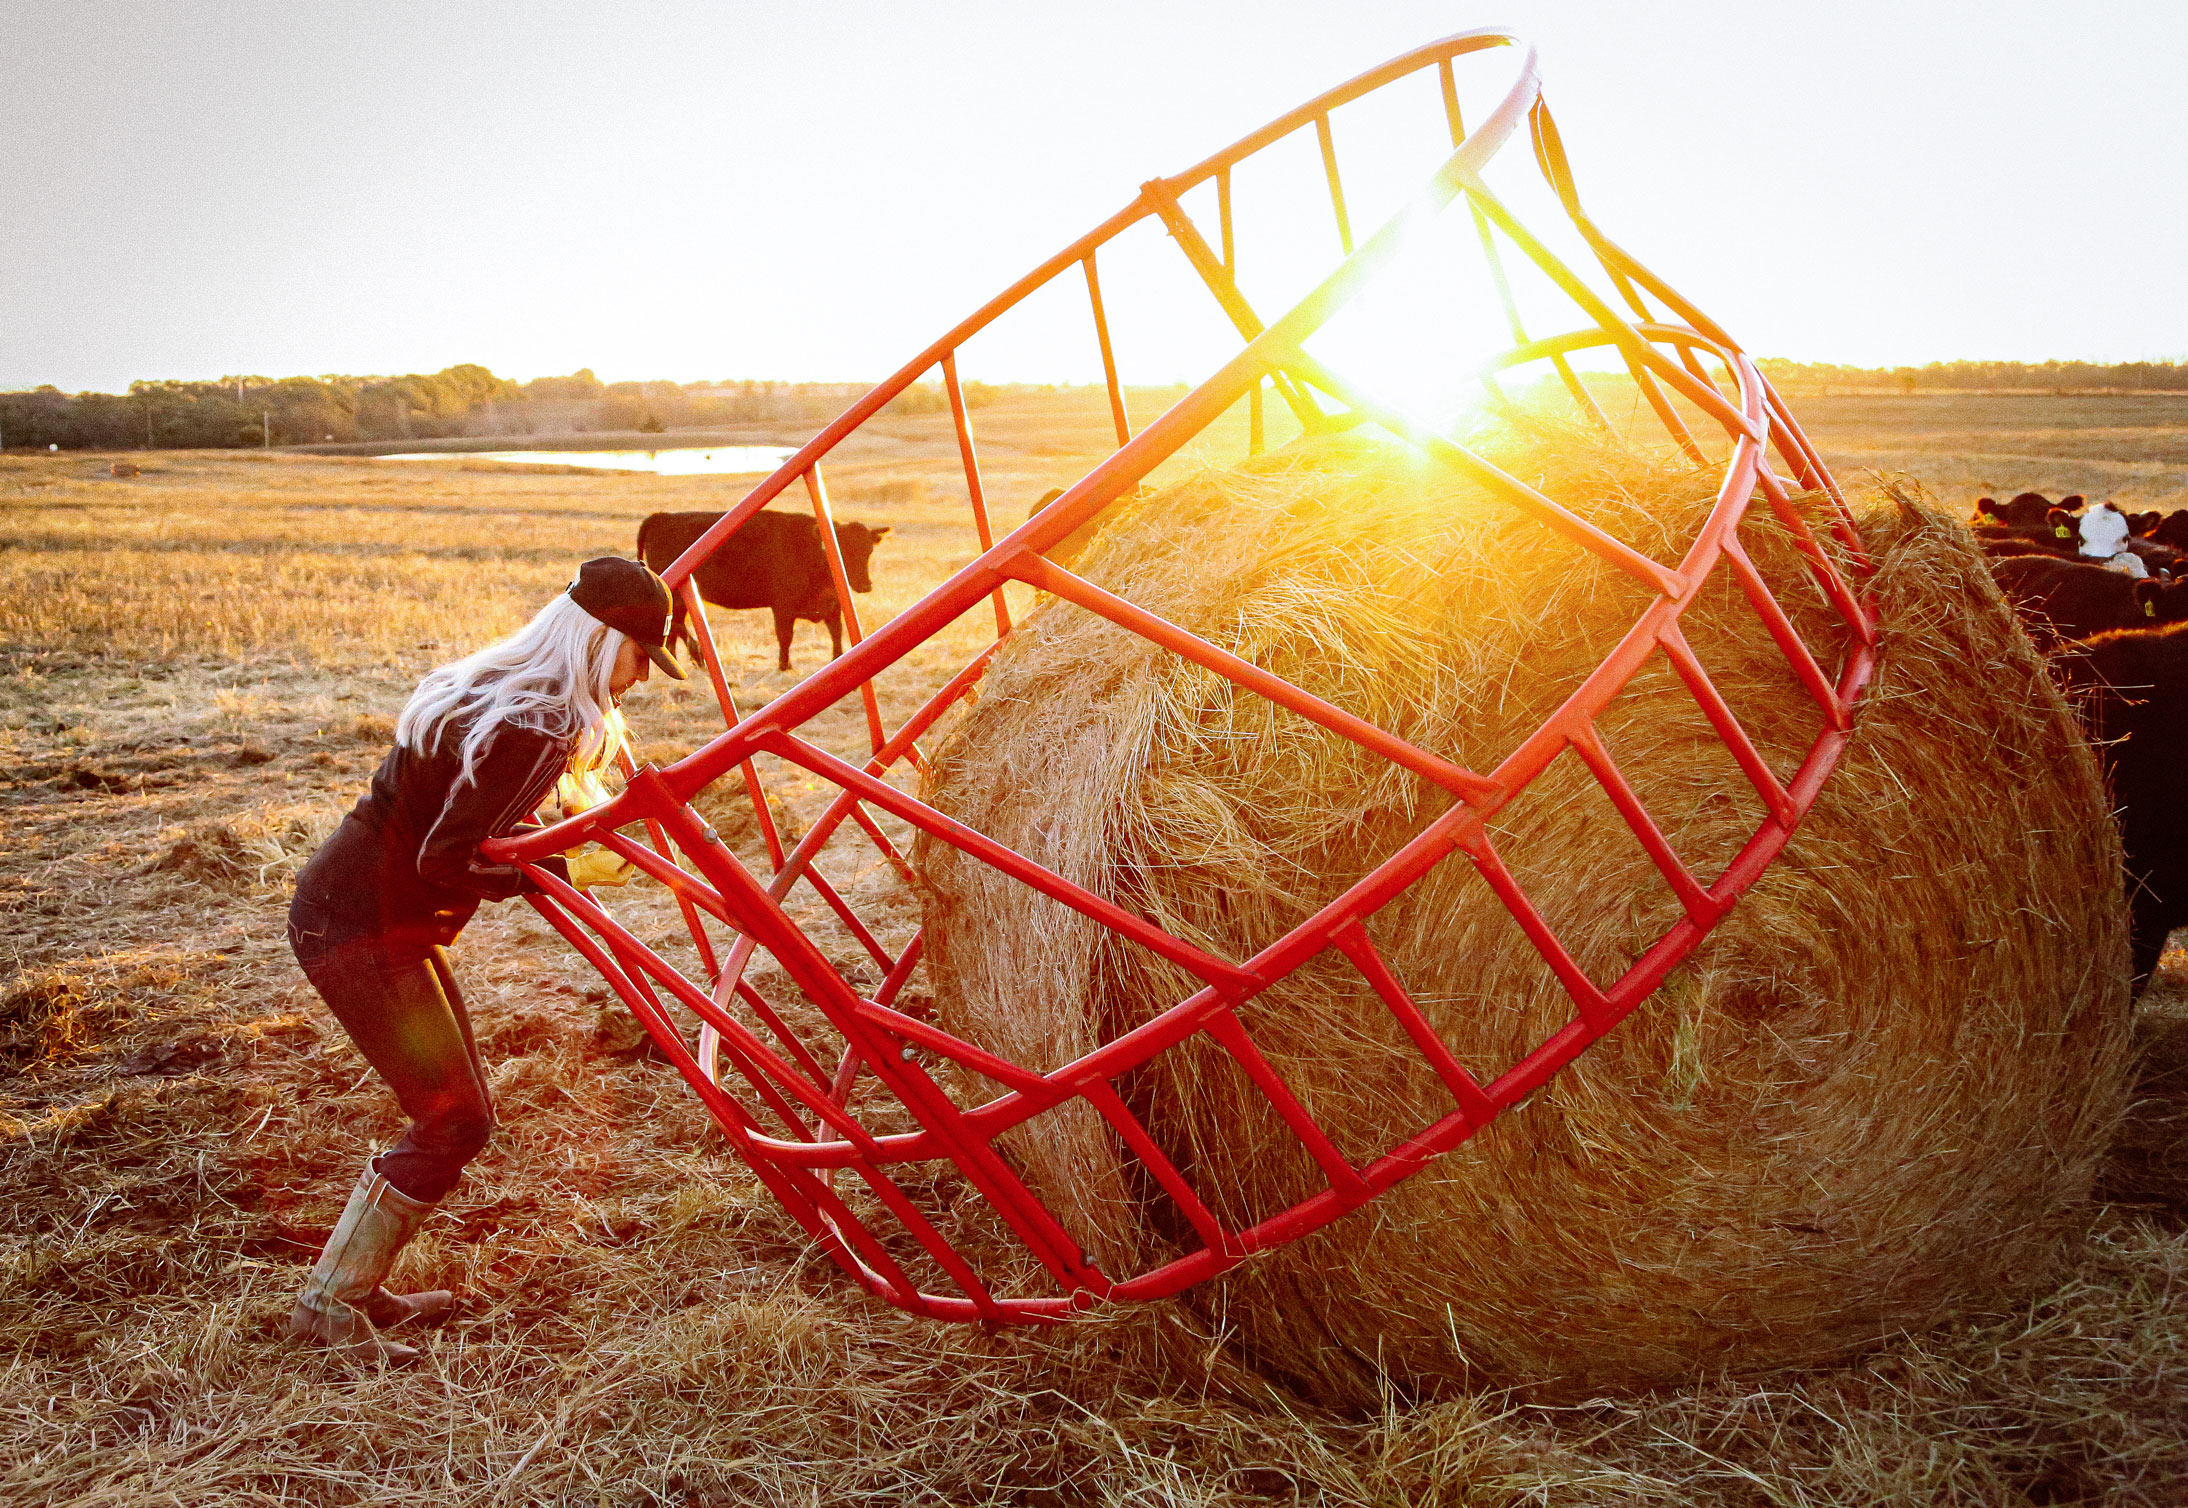 A woman working with a hay bale